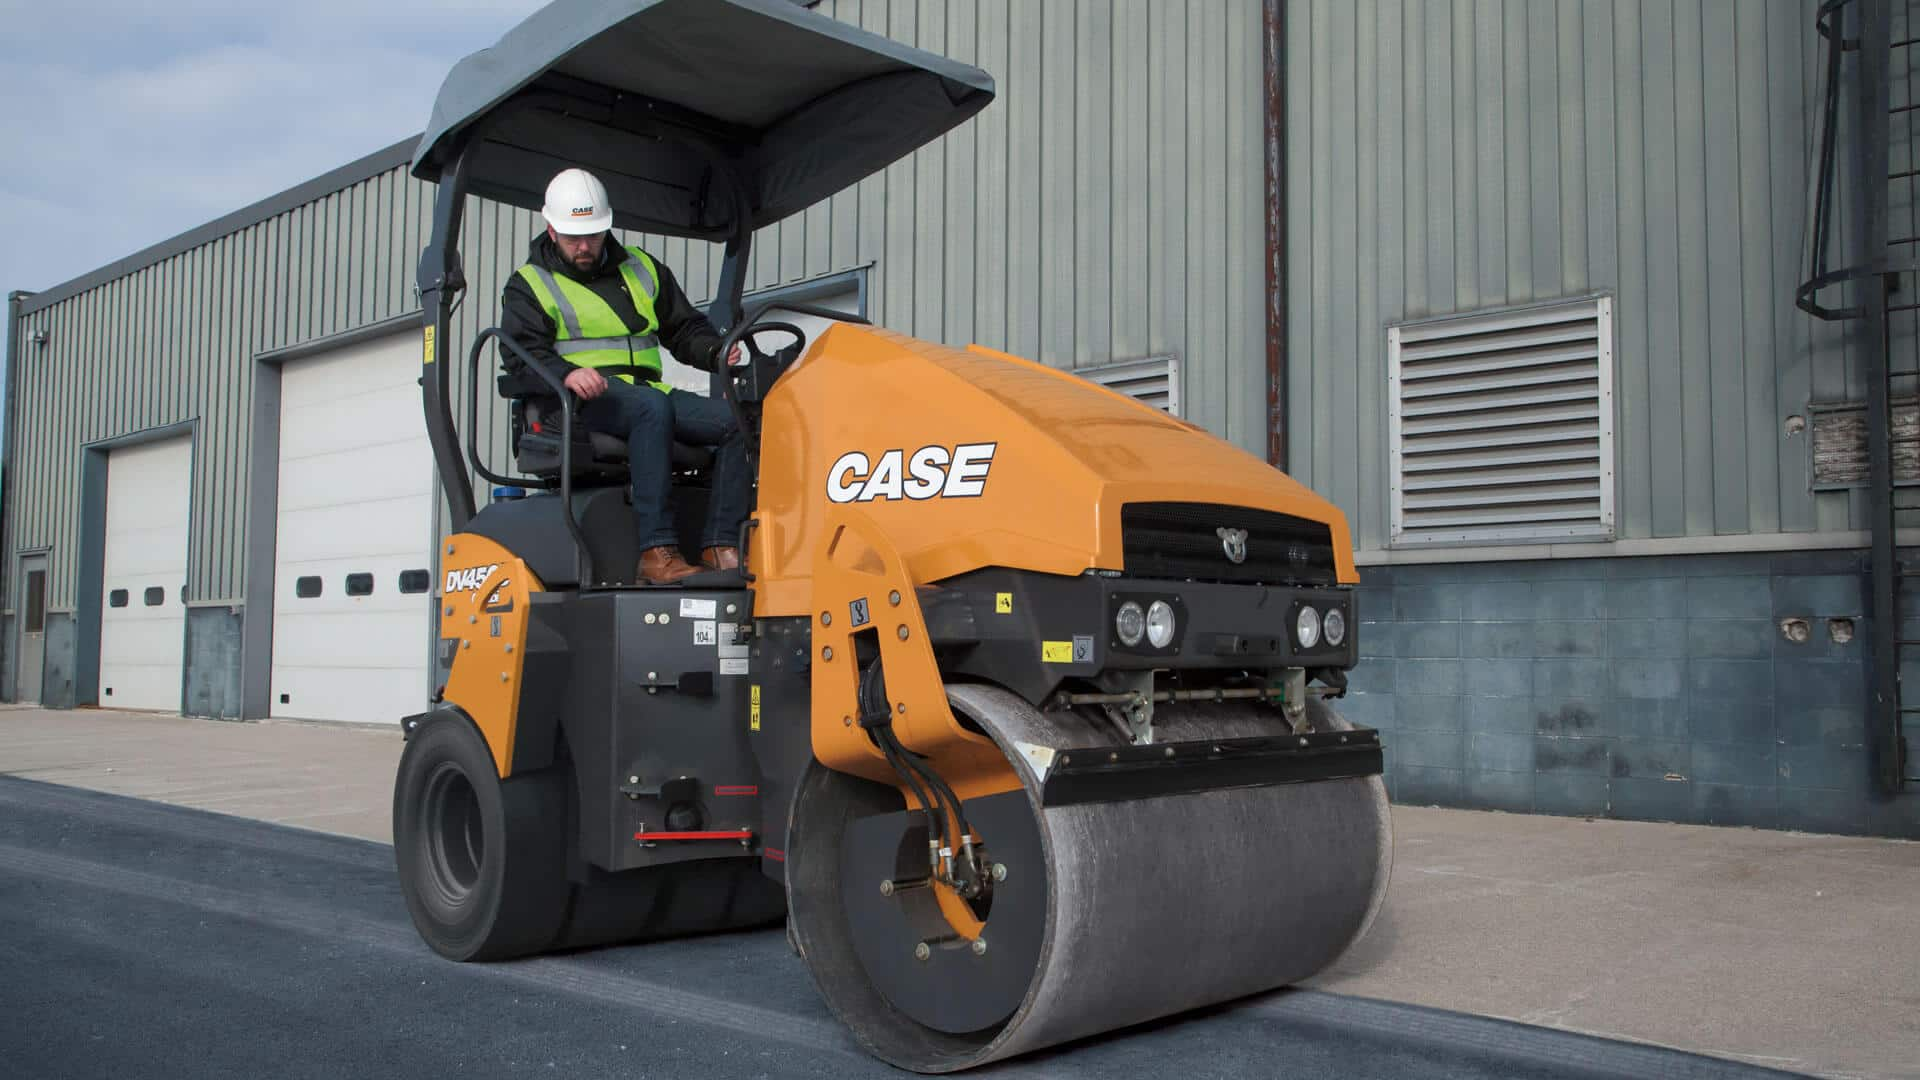 https://assets.cnhindustrial.com/casece/nafta/assets/Products/Compaction-Equipment/Double-Drum-Rollers/DV45CD_DV45D_IMG_0325.jpg?Width=800&Height=450